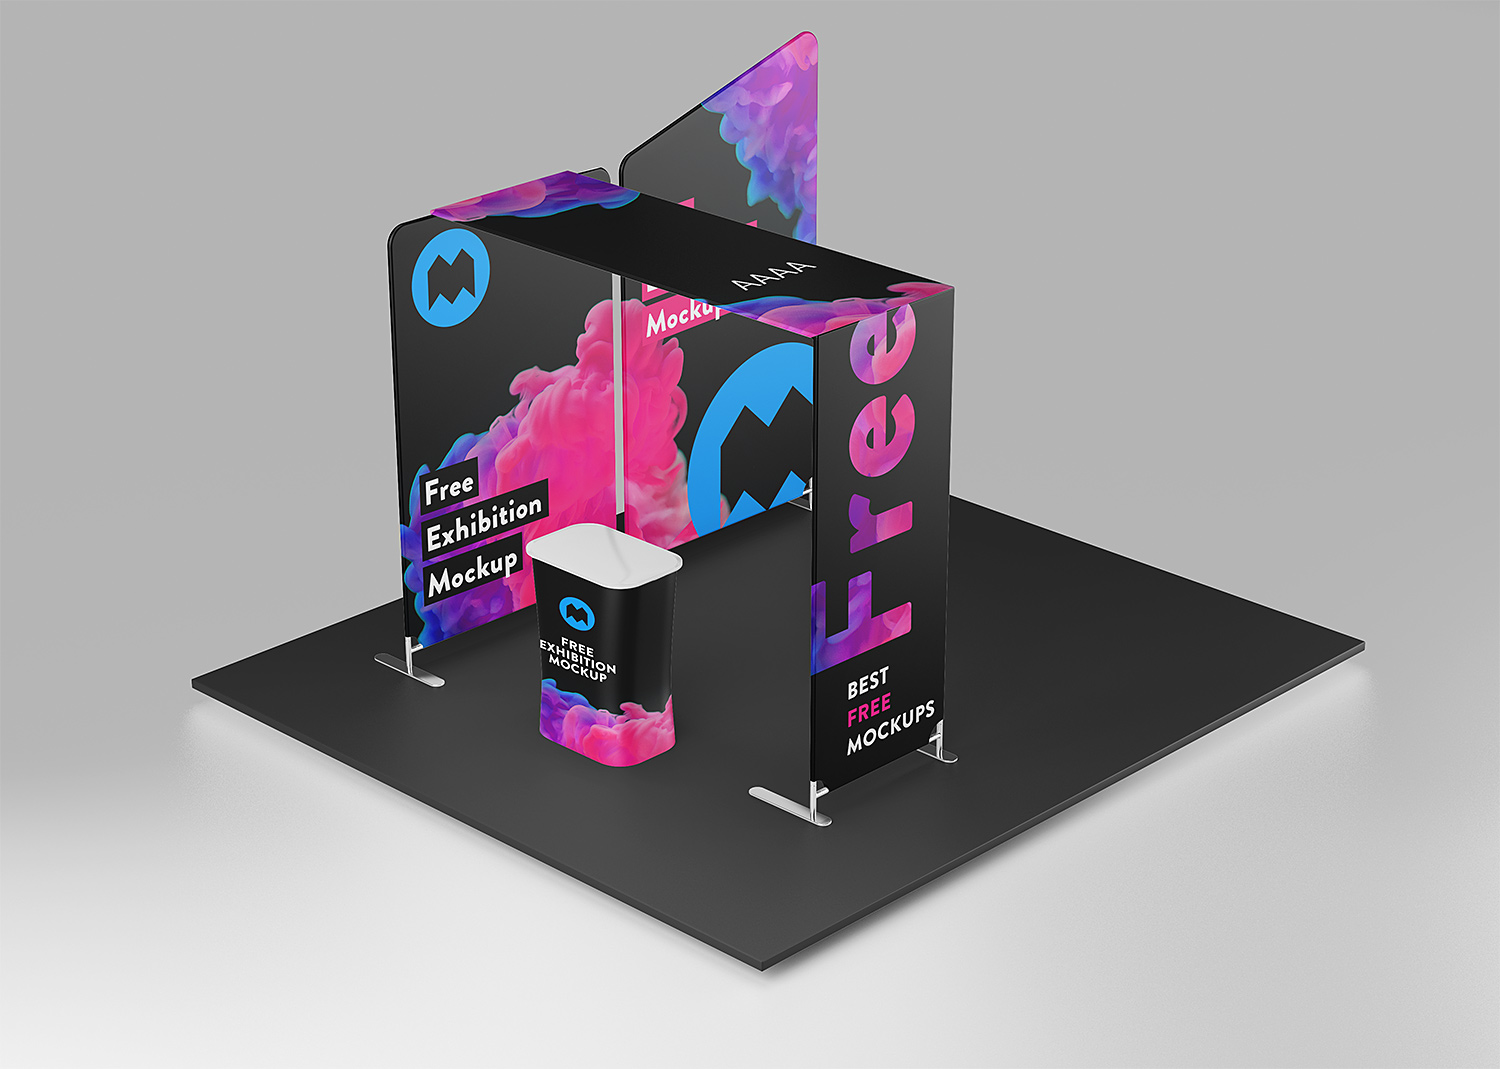 Mock Up Exhibition Stand Psd Free Download : Free exhibition mockup